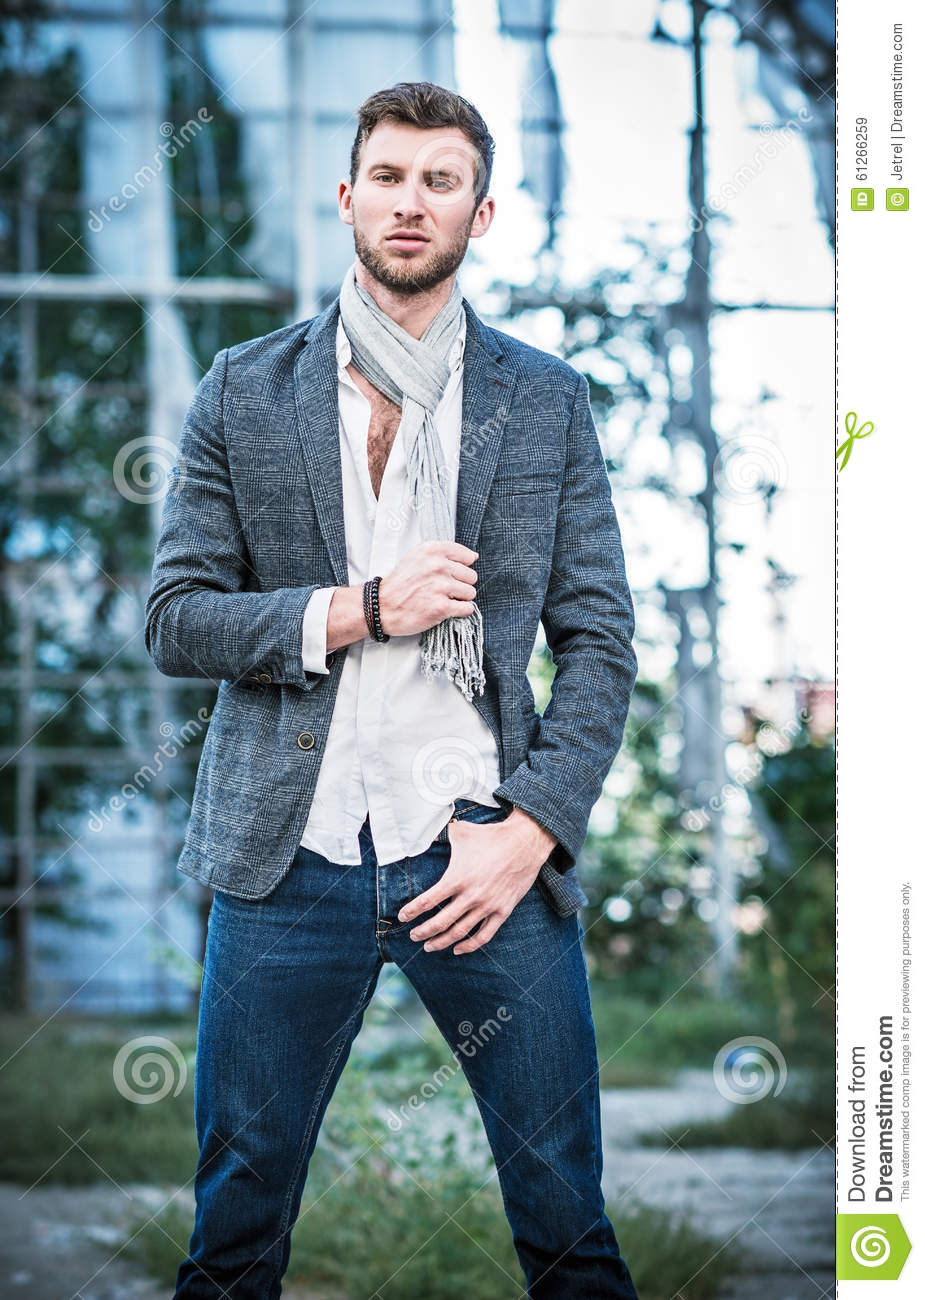 Fashion Shot: Portrait Of Handsome Young Man Wearing Jeans ...